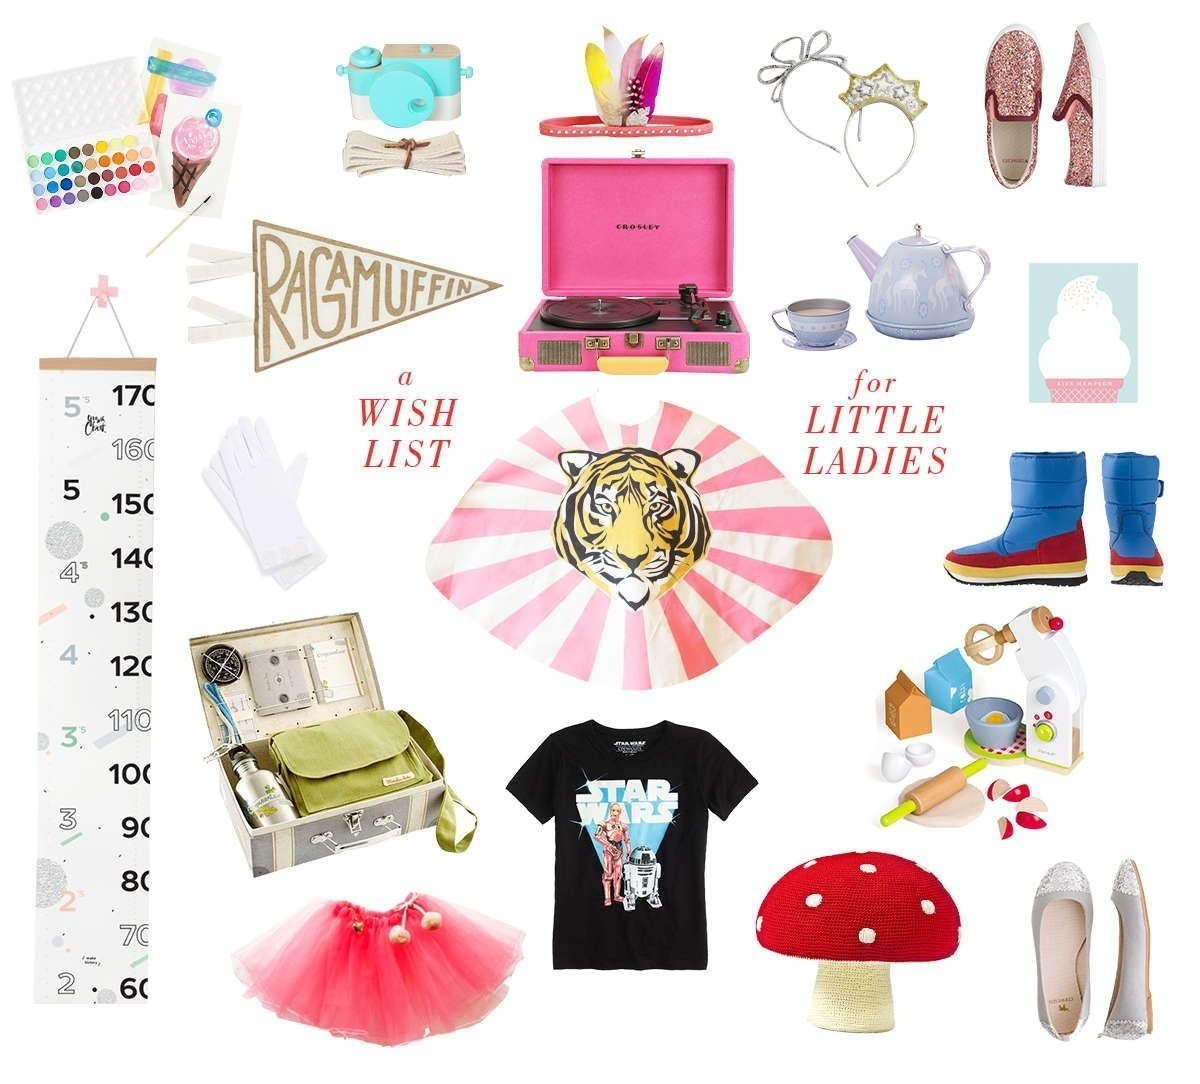 10 Stunning Gift Ideas For Little Girls a wish list for little ladies christmas gifts and gift 2020